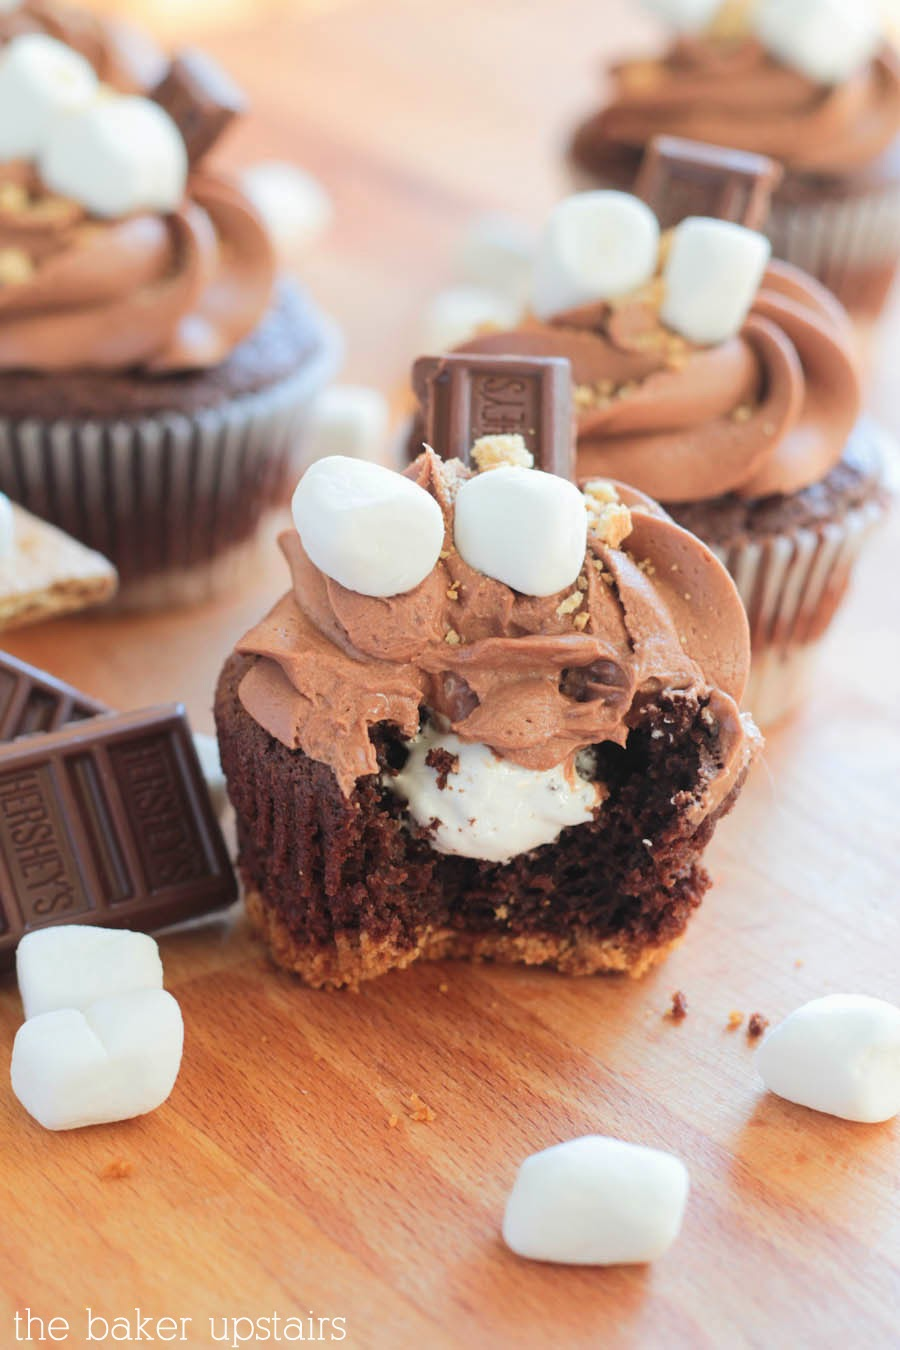 These delicious s'mores cupcakes have all the flavors you love in s'mores, but in a fun cupcake form!